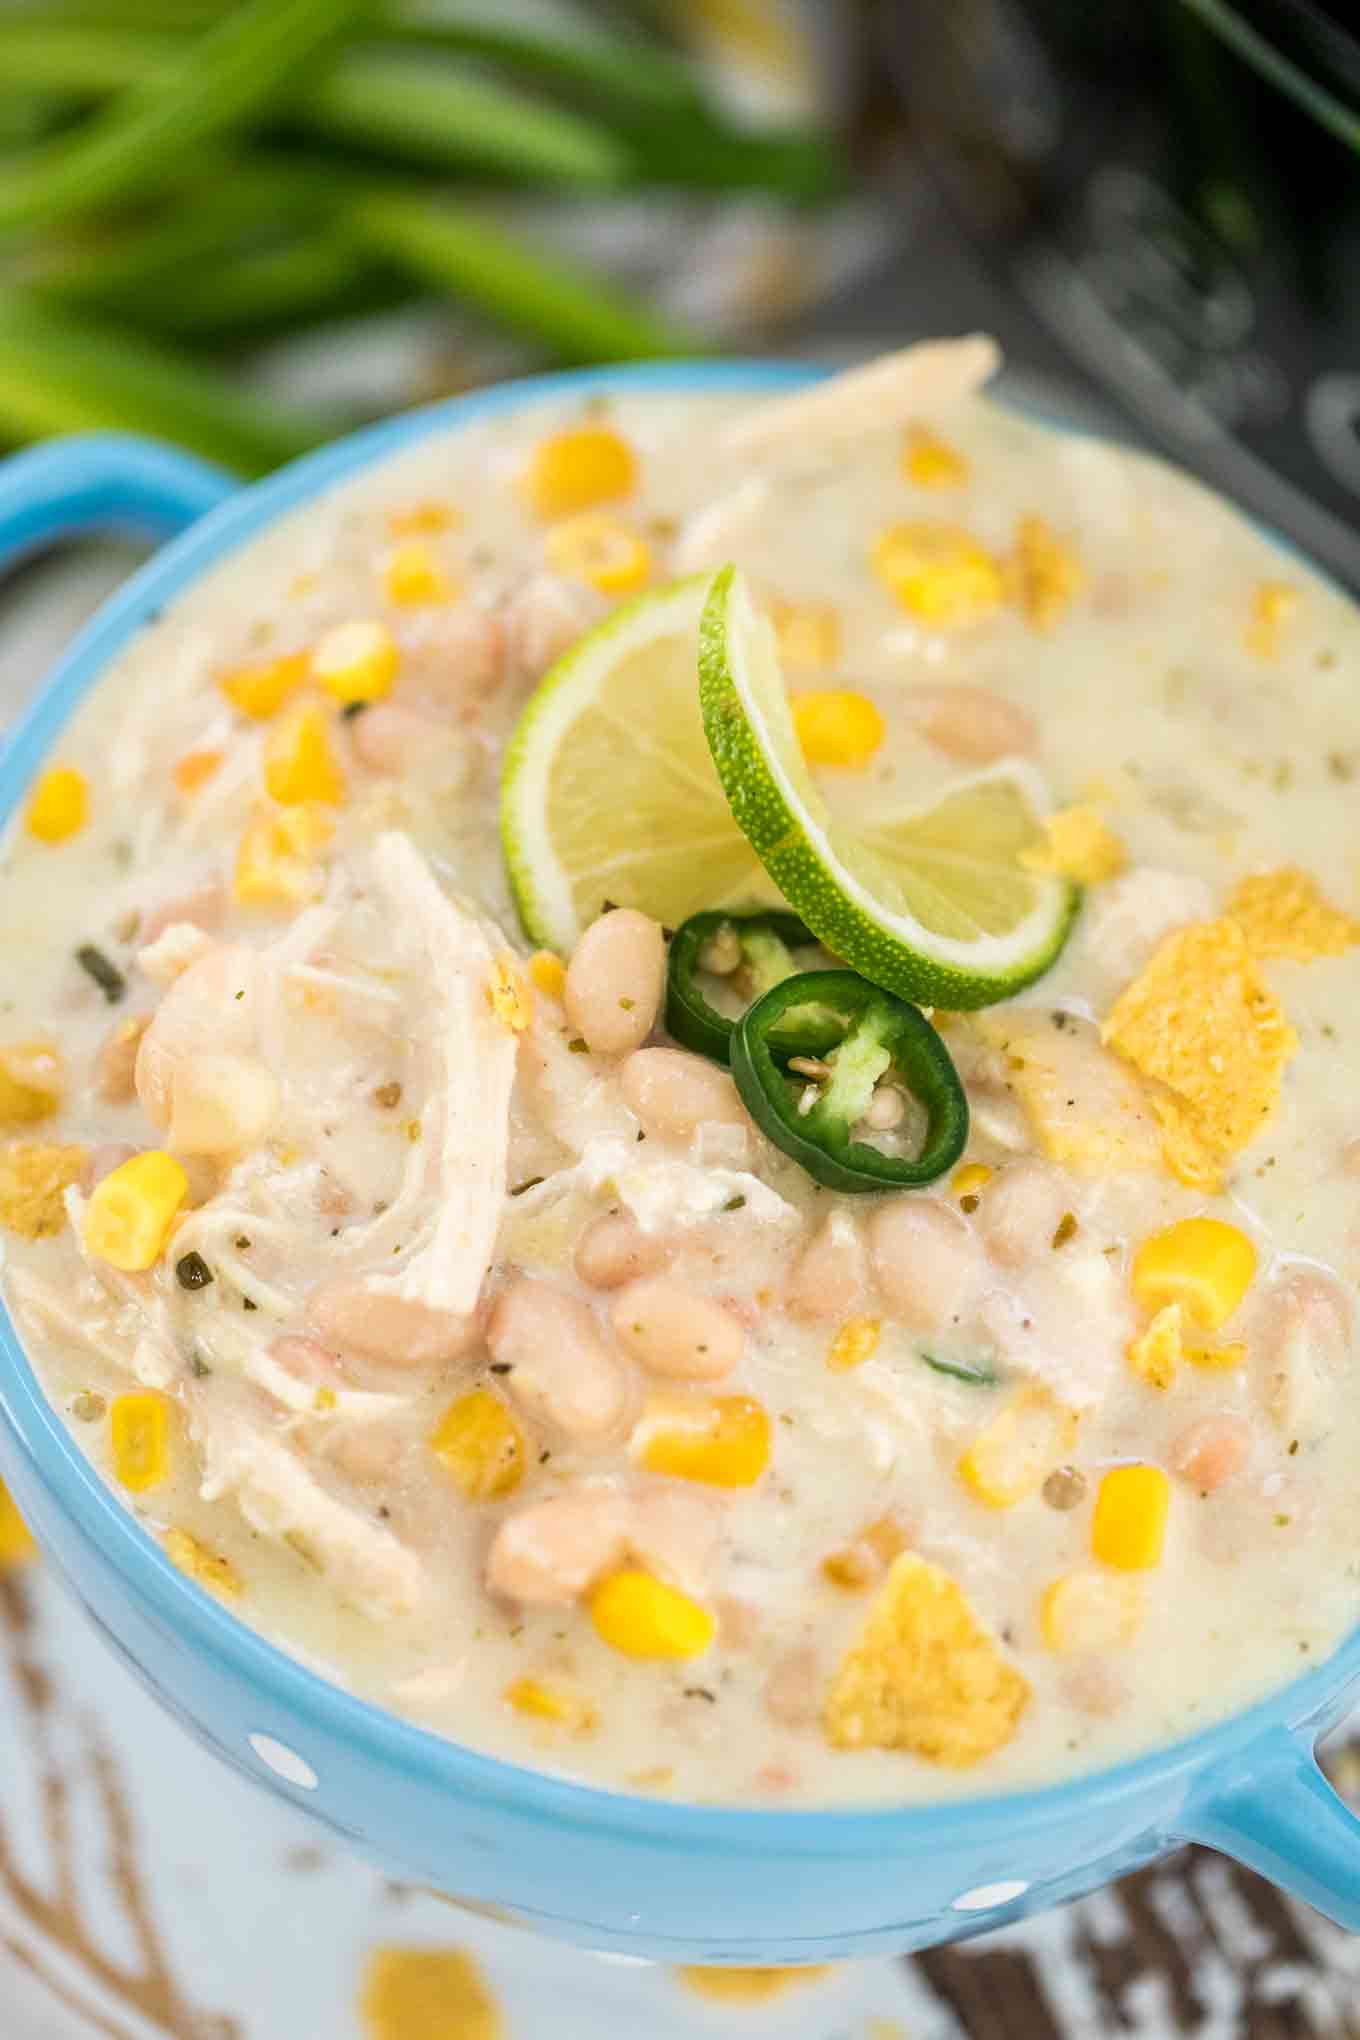 Creamy Crockpot White Chicken Chili Sweet And Savory Meals,Origami For Beginners Step By Step